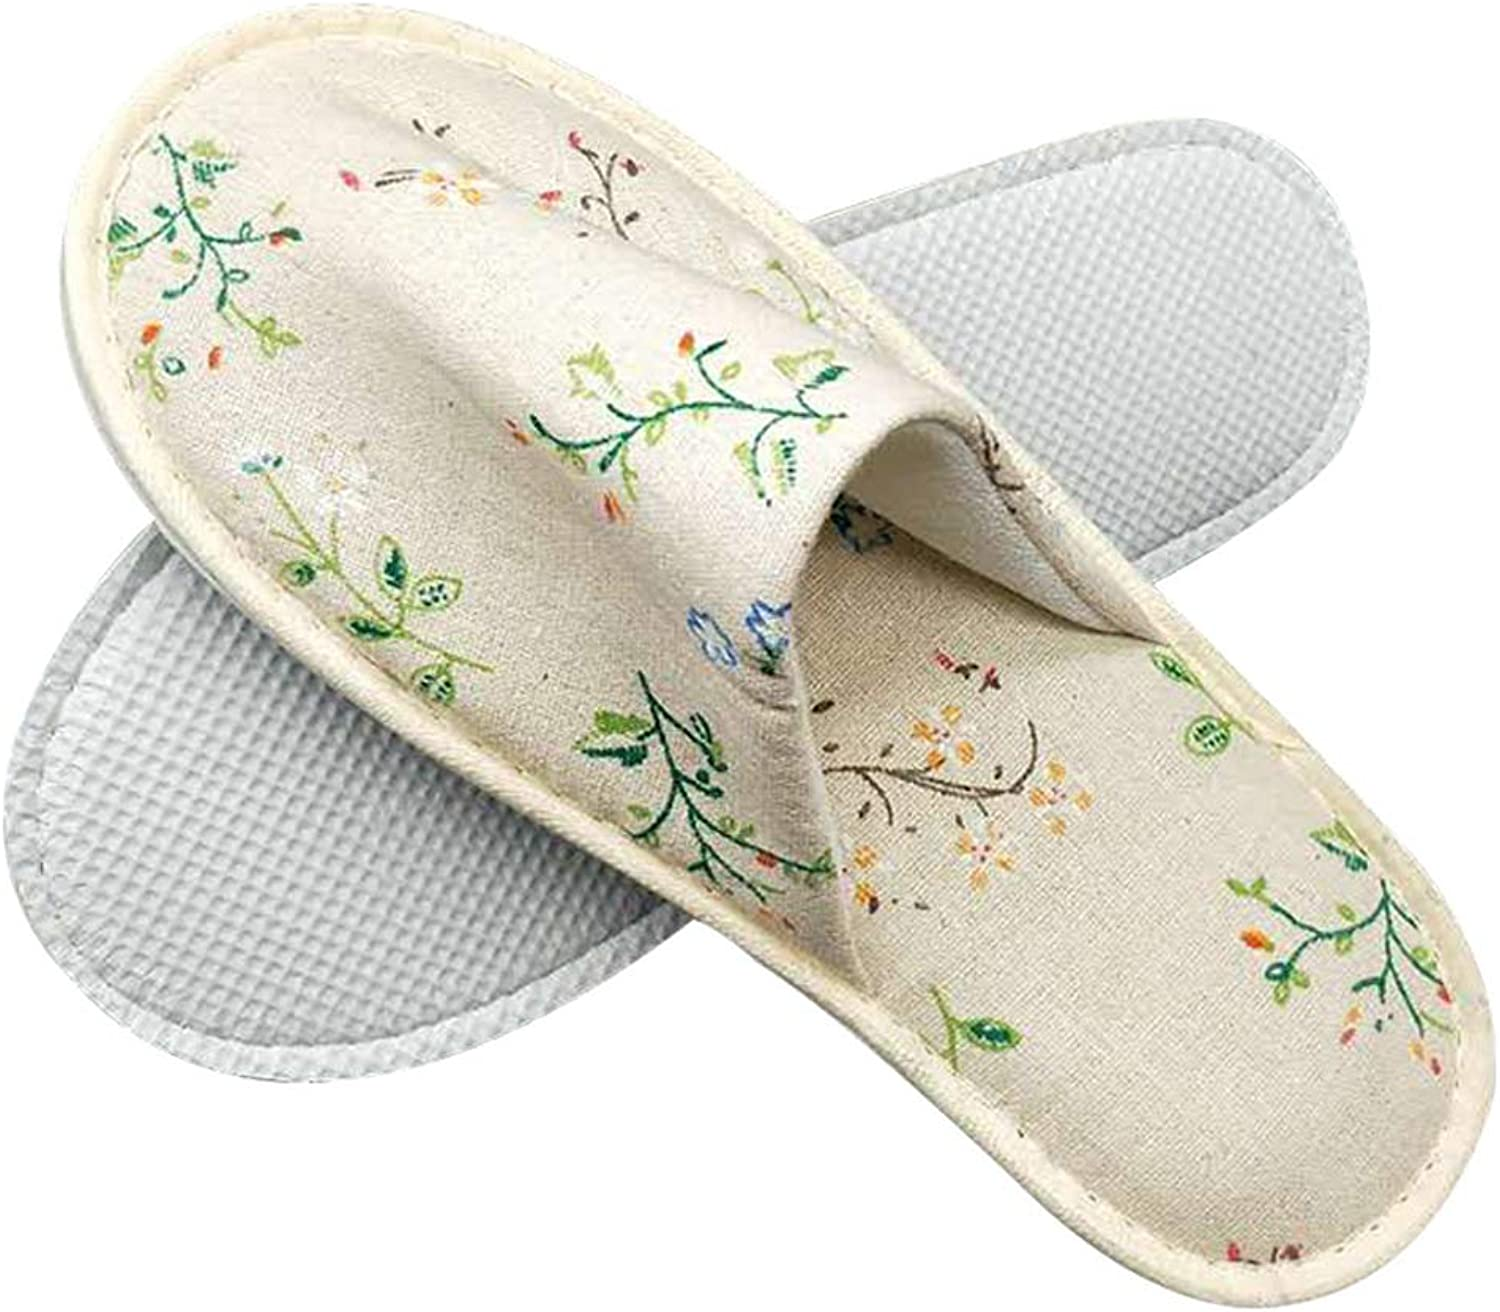 Disposable SPA Slippers Non-Skid Closed Toe Unisex Linen Slippers For Home Hotel Guest Or Commercial Use,G,30Pair